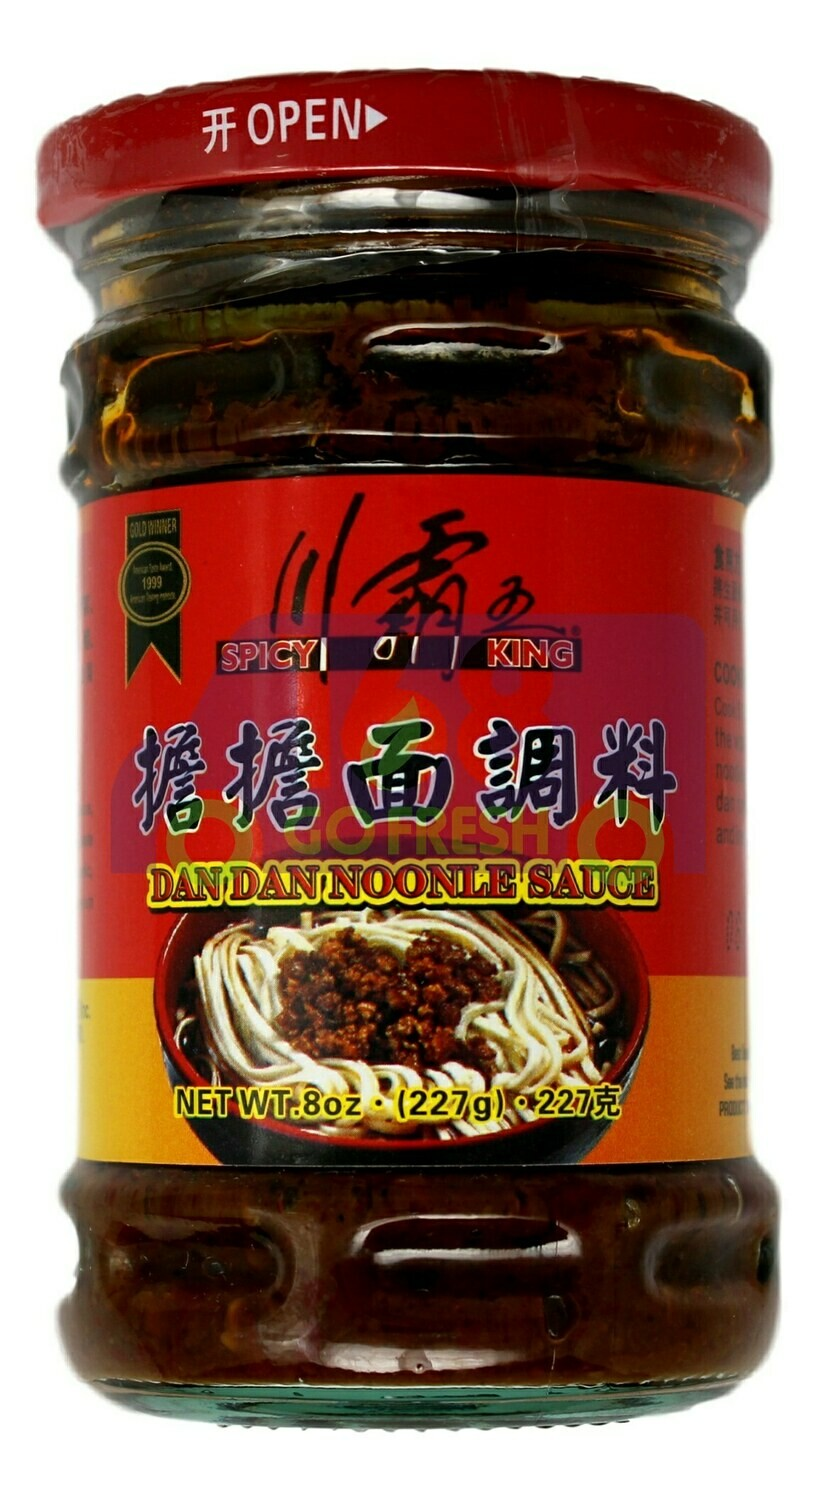 SPICY KING DAN DAN NOODLE SAUCE 川霸王担担面调料瓶装(227G)